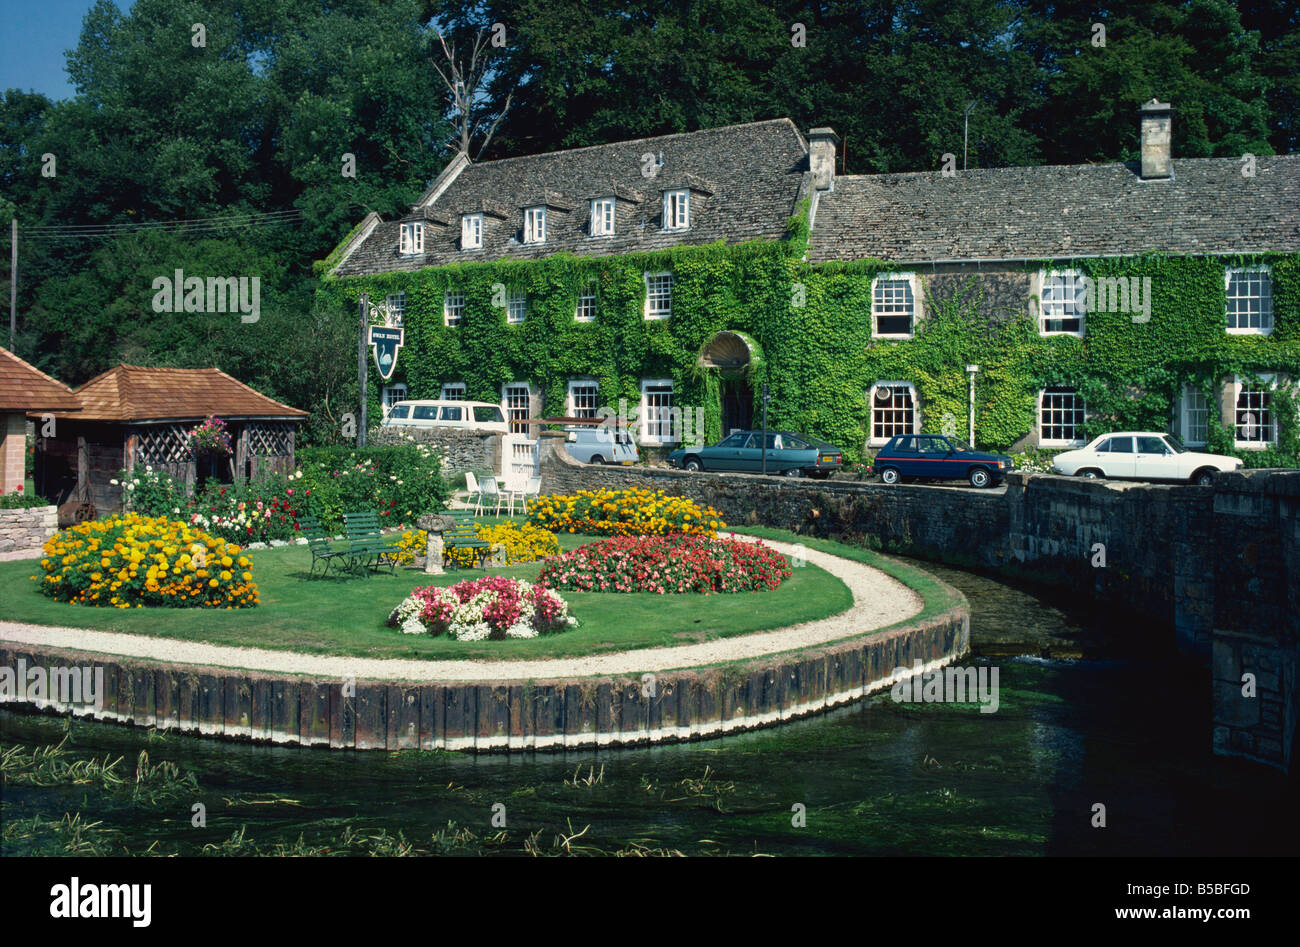 Swan Hotel on a bend in the River Coln, Bibury, Gloucestershire, The Cotswolds, England, Europe - Stock Image